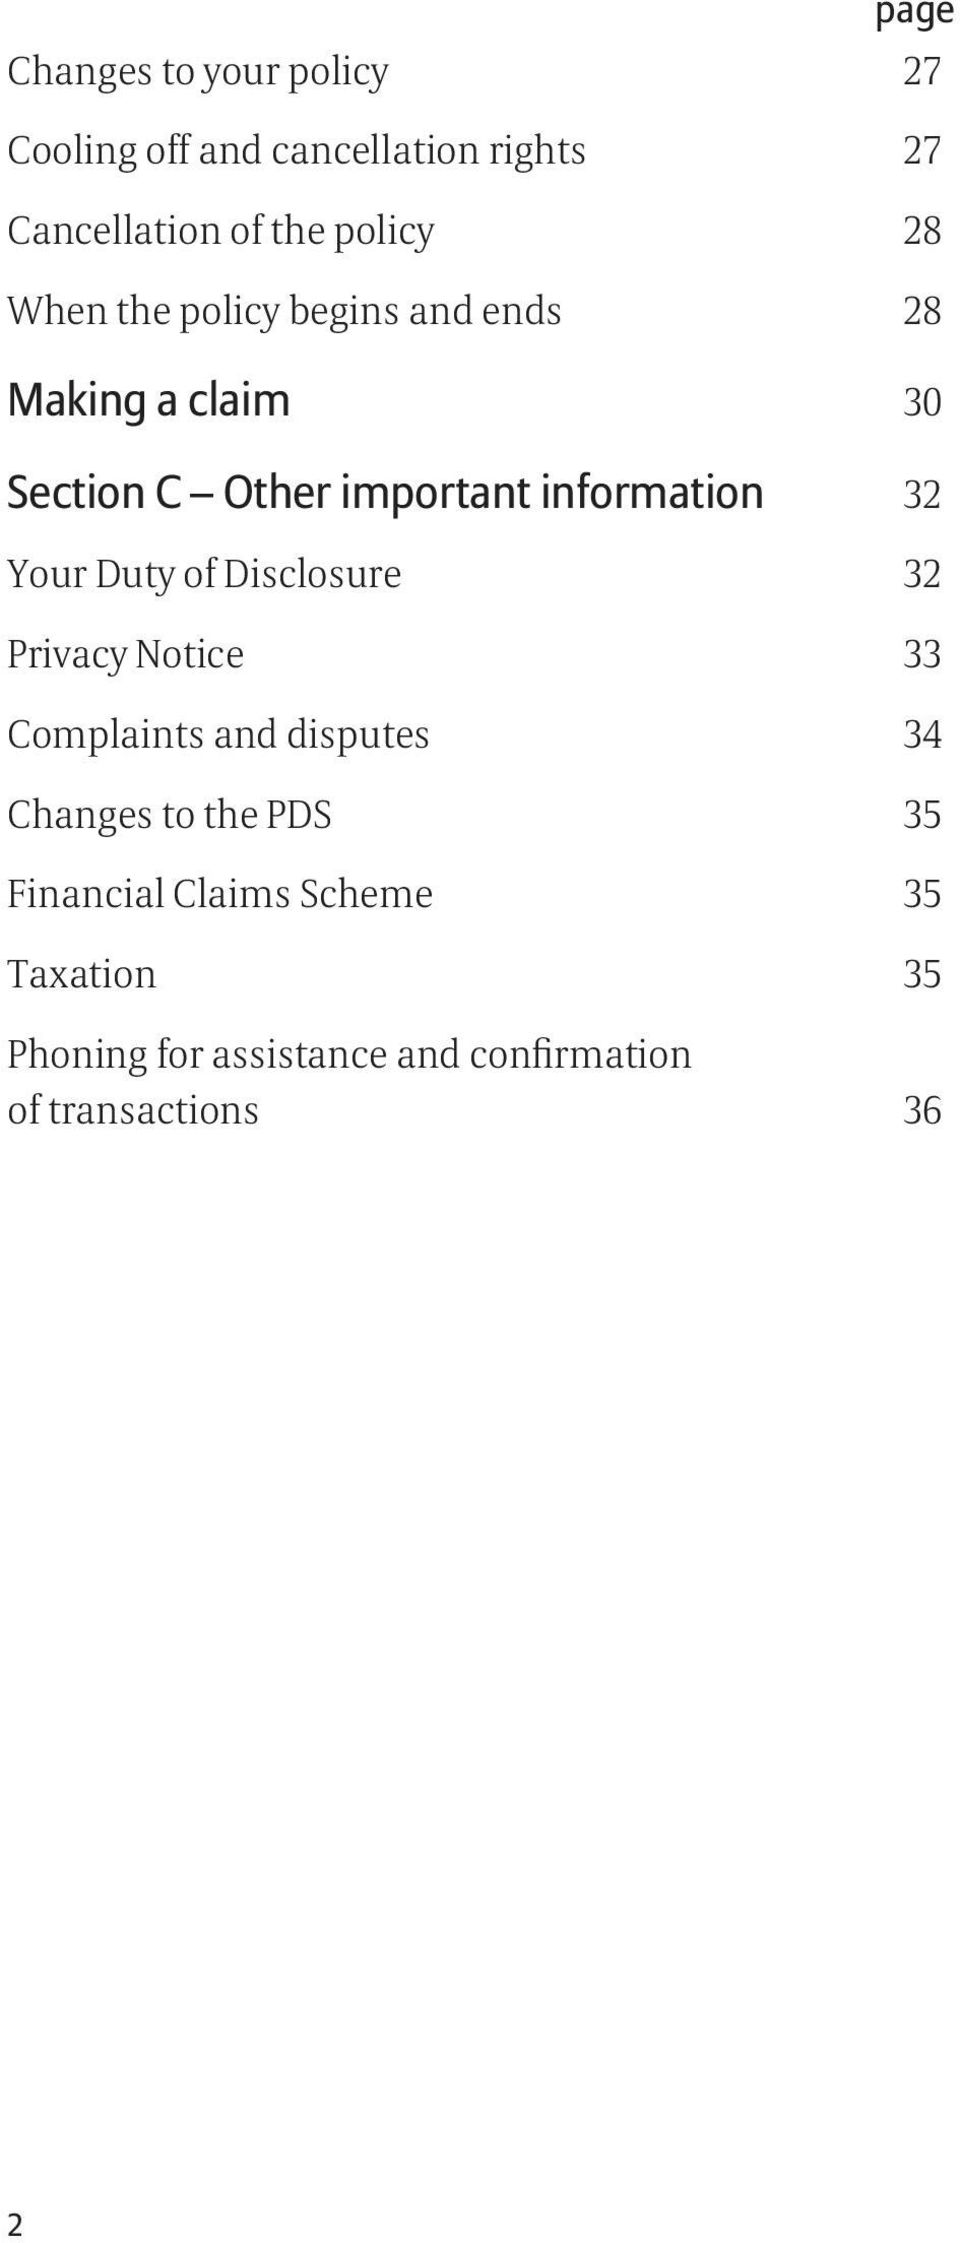 Your Duty of Disclosure 32 Privacy Notice 33 Complaints and disputes 34 Changes to the PDS 35